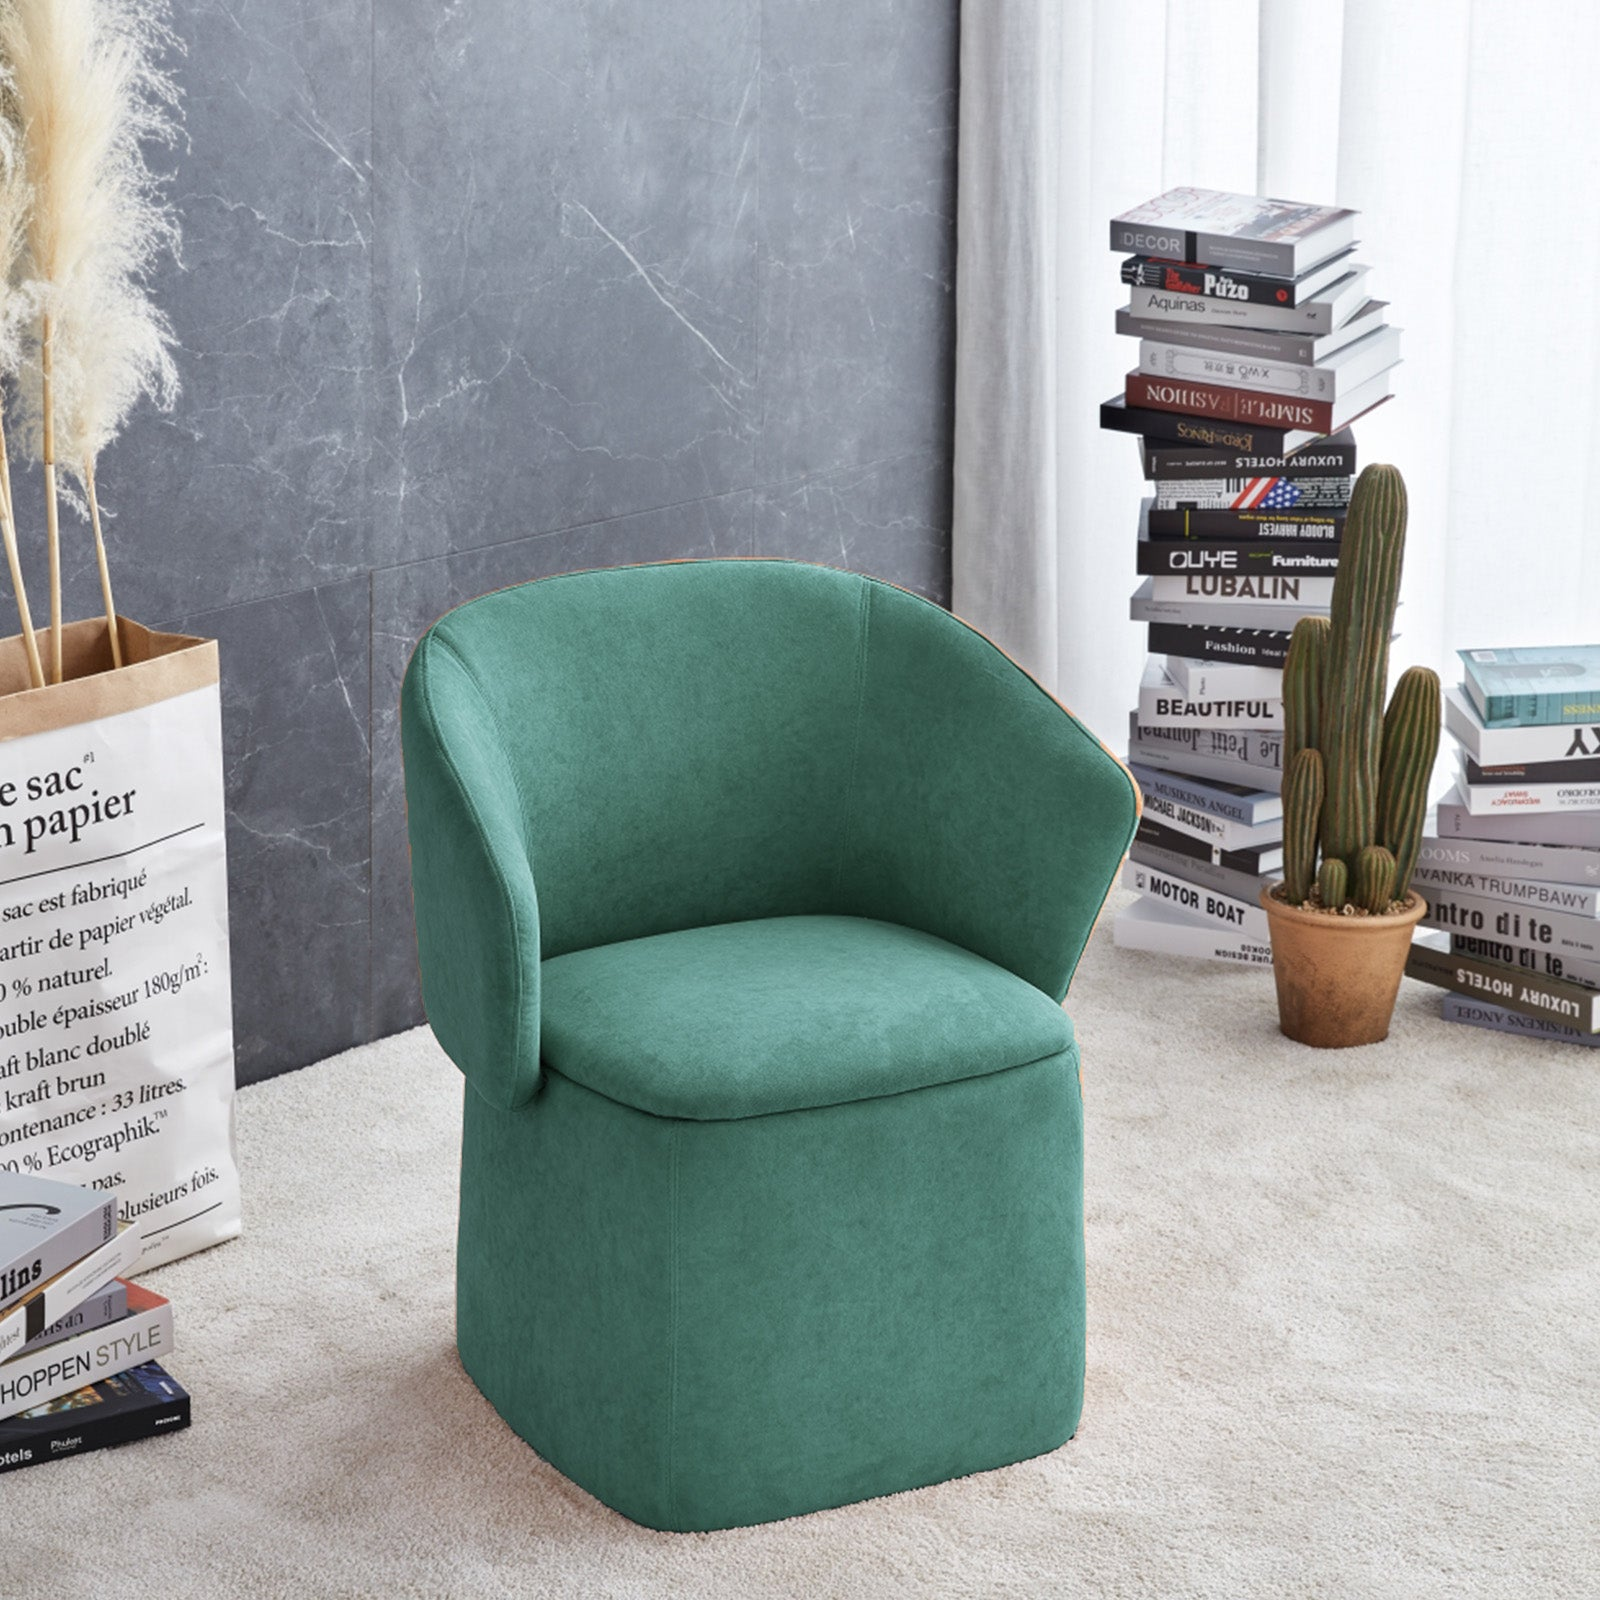 Flexa Chair/stool/storage  B2280-green -  كرسي / مقعد / تخزين فليكسا - Shop Online Furniture and Home Decor Store in Dubai, UAE at ebarza